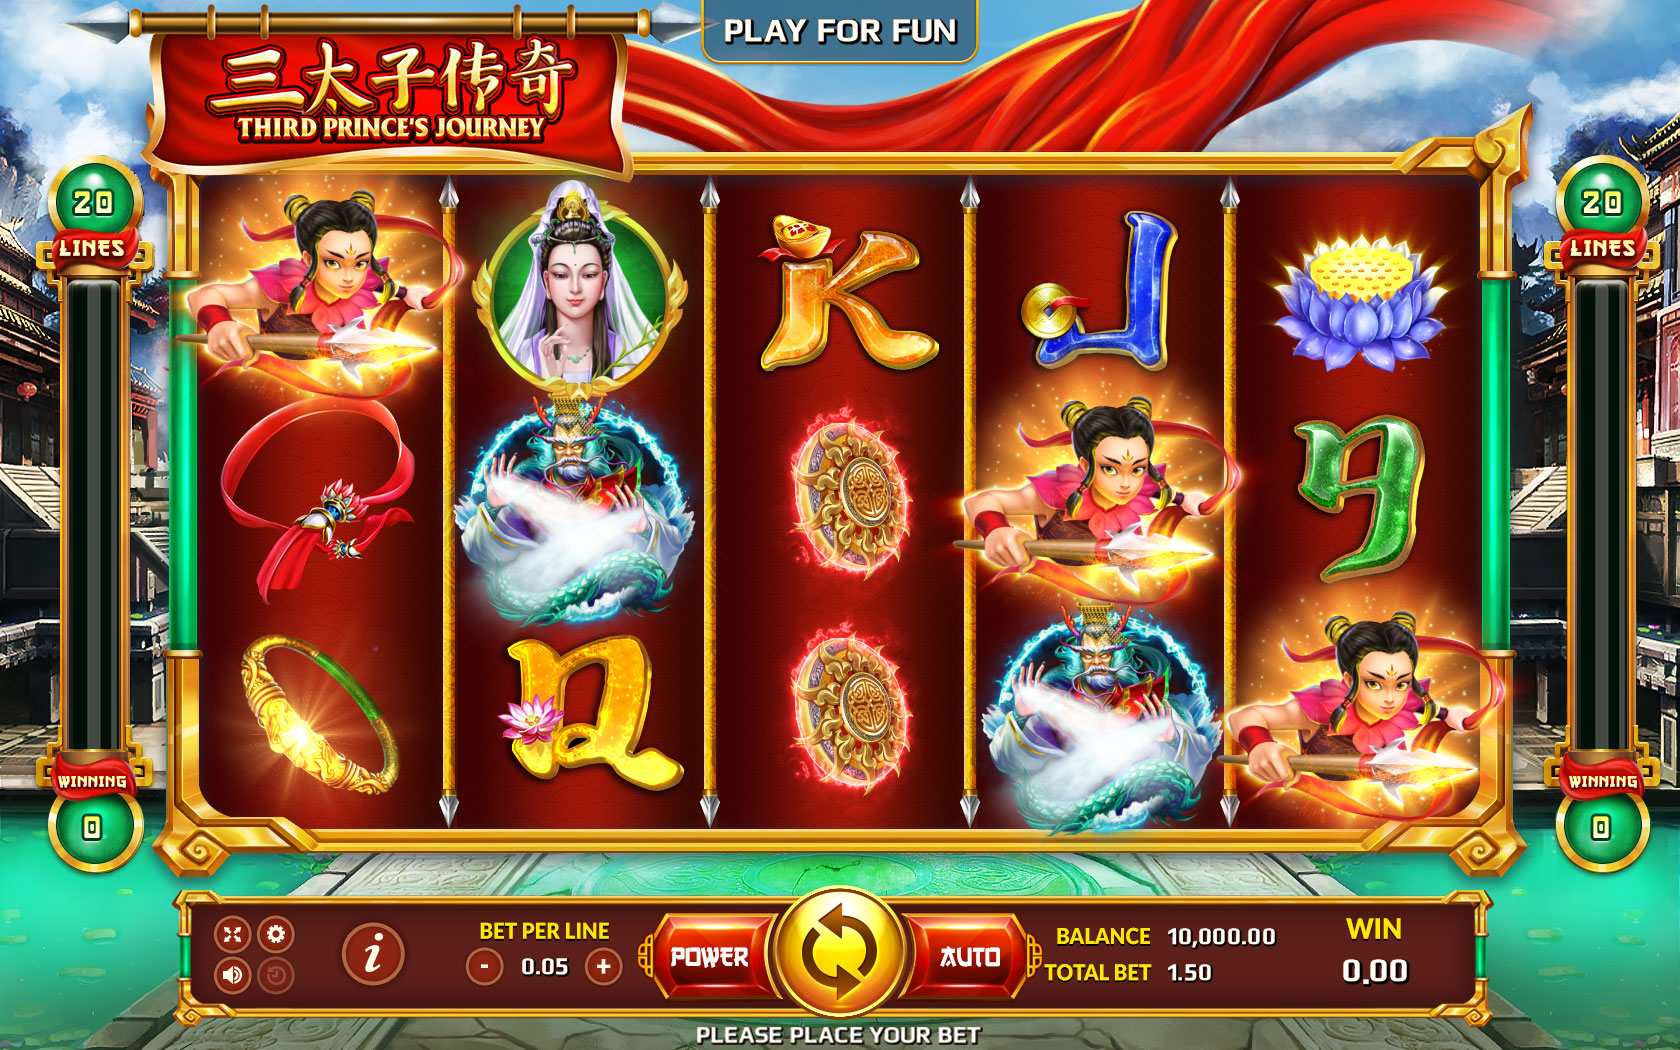 Spiele The Third Lotus Prince - Video Slots Online